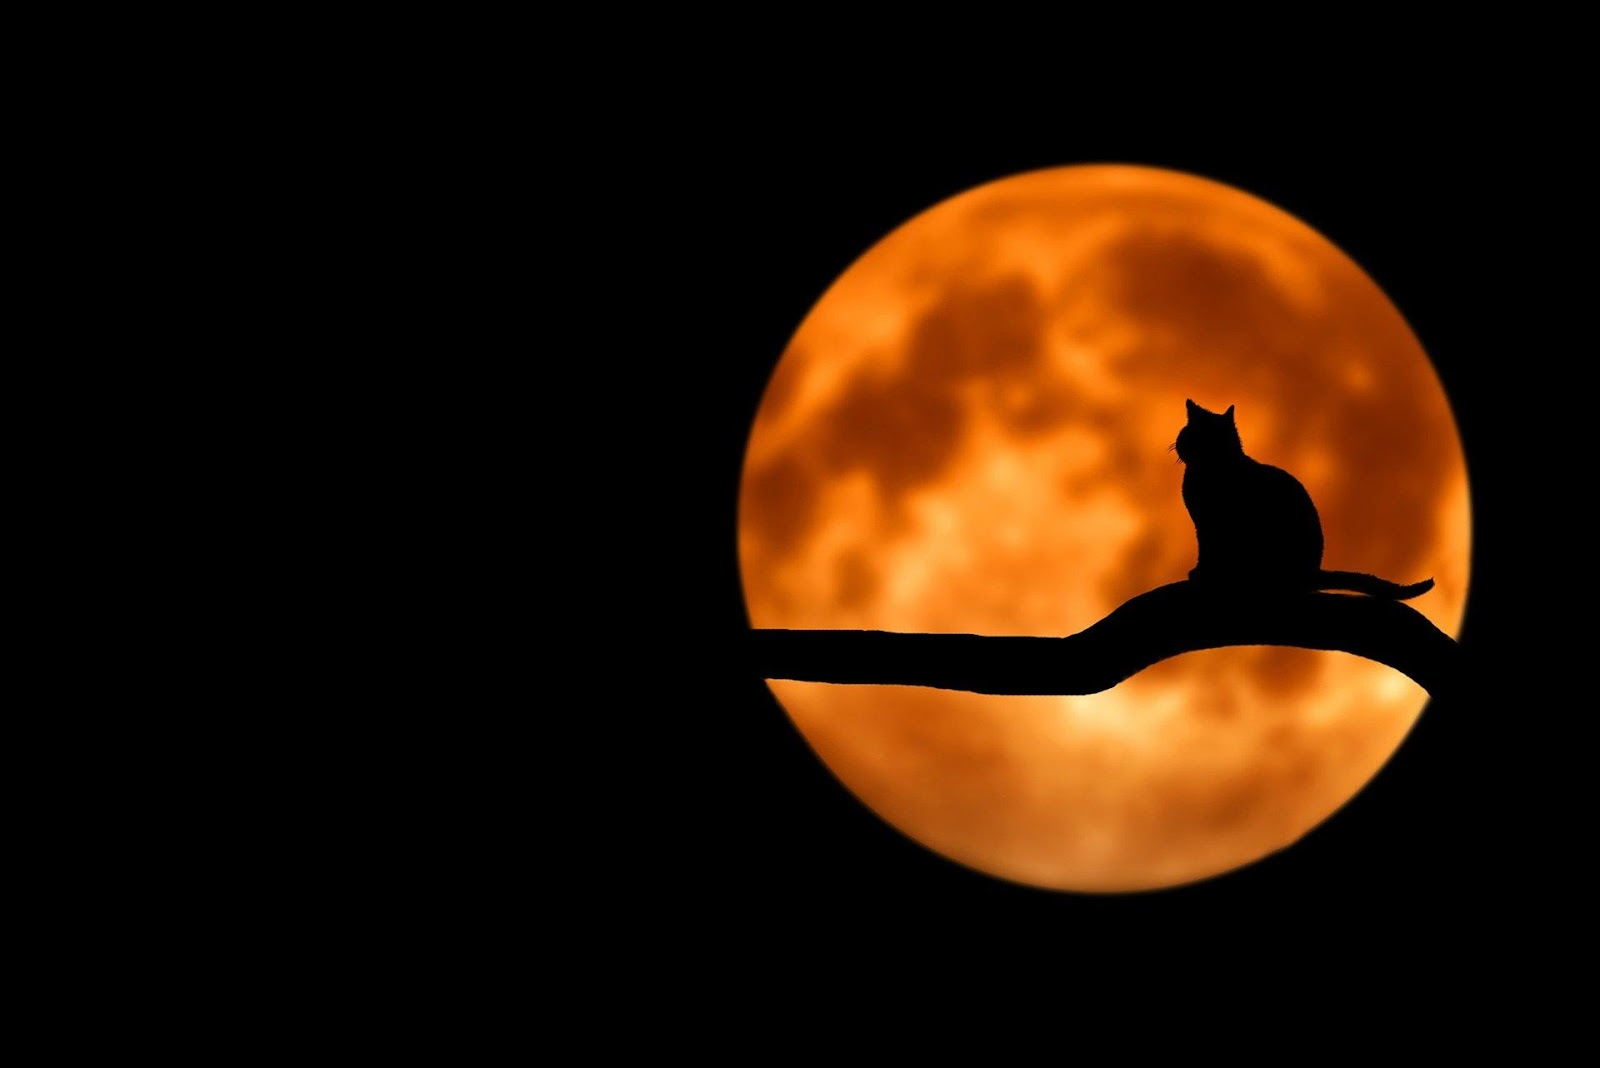 cat silhouette in front of the moon